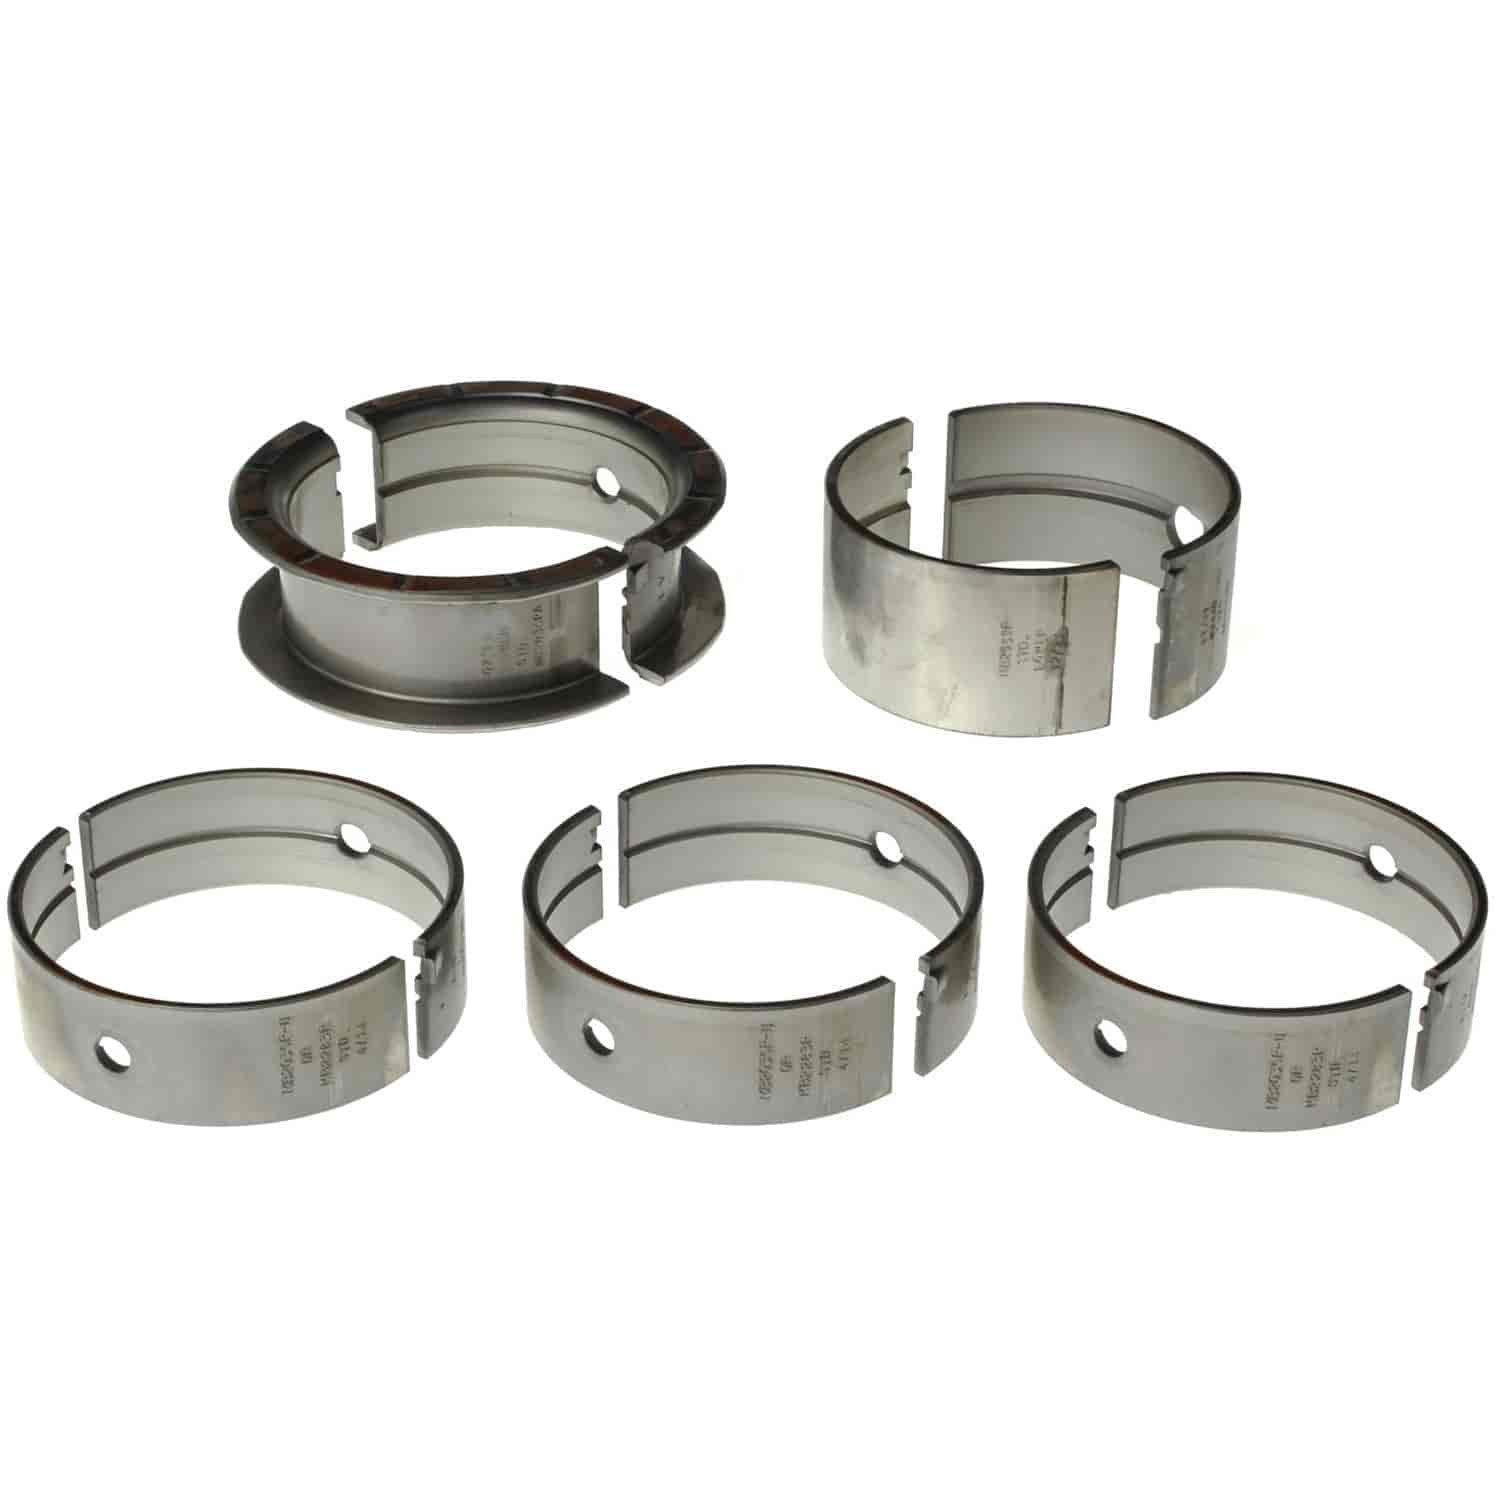 Clevite MS963P - Clevite 77 High-Performance Bearings